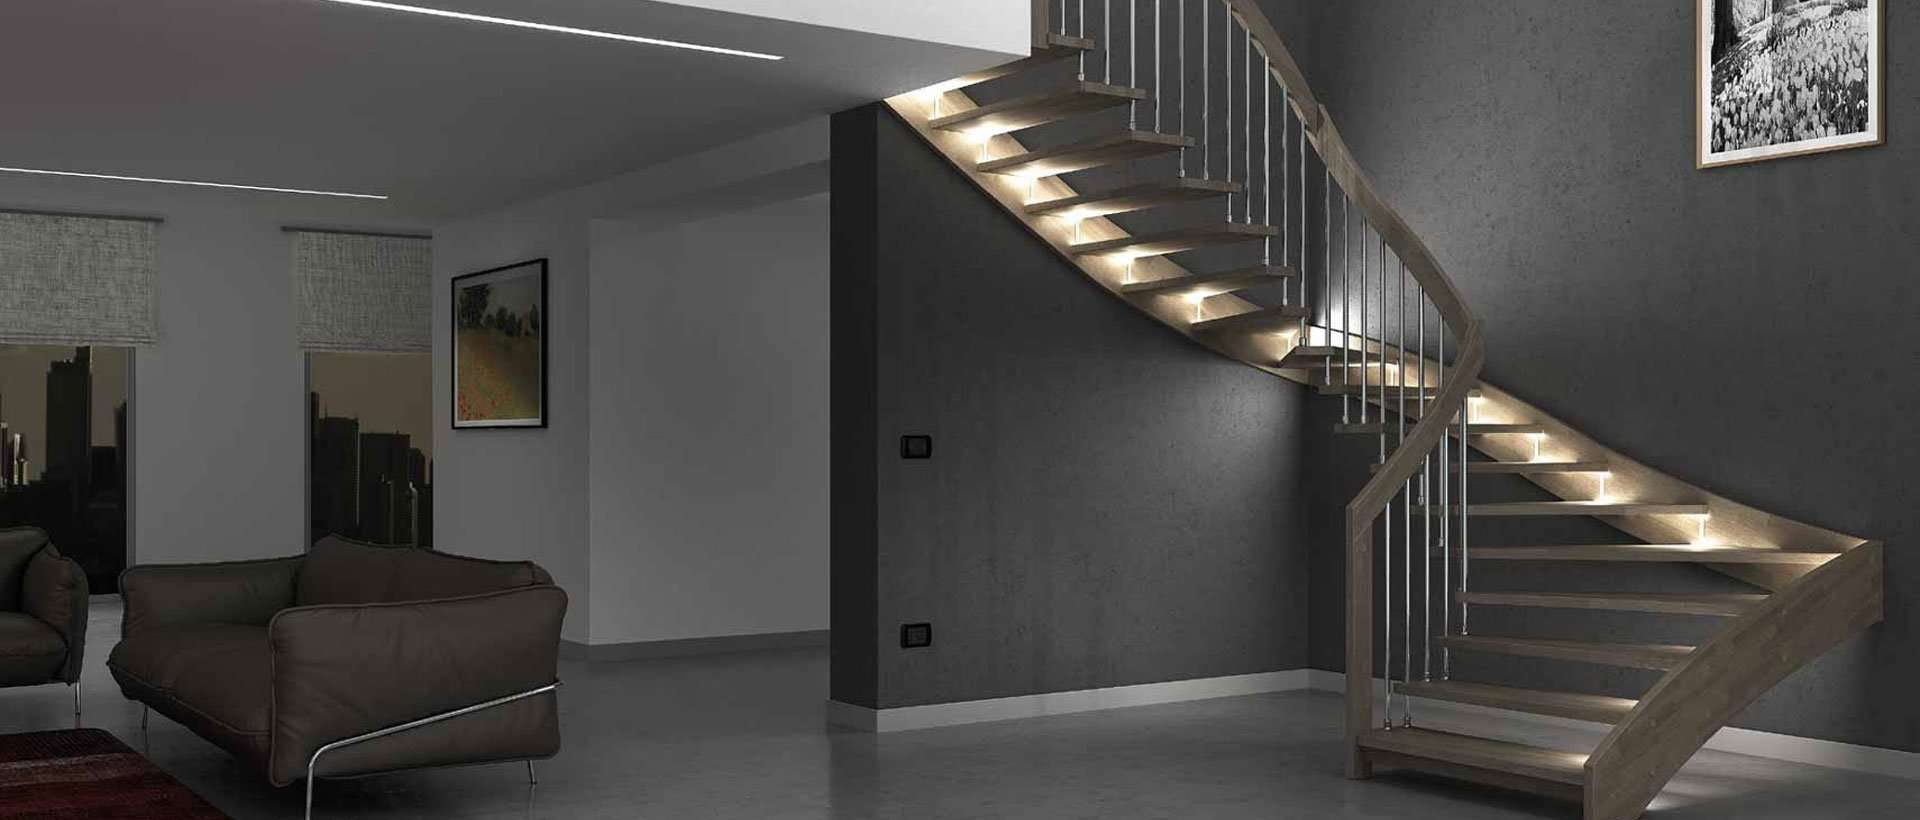 escalier interieur design perfect eclairage escalier intrieur led aux deux extrmits pour. Black Bedroom Furniture Sets. Home Design Ideas